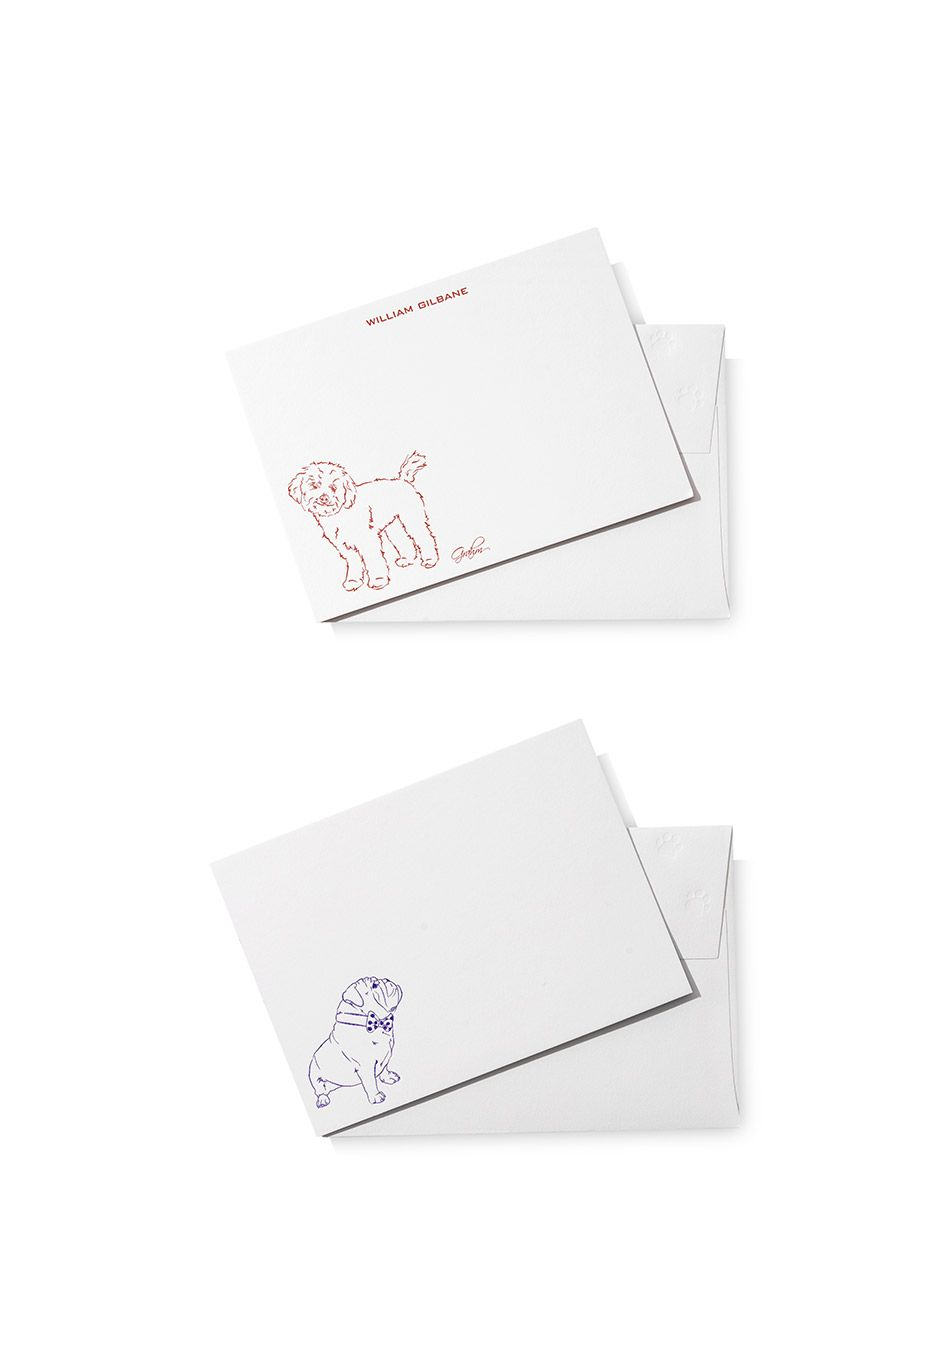 Artist Rory Mackay creates an original illustration based on a photo of your pet that's letterpressed into each note.